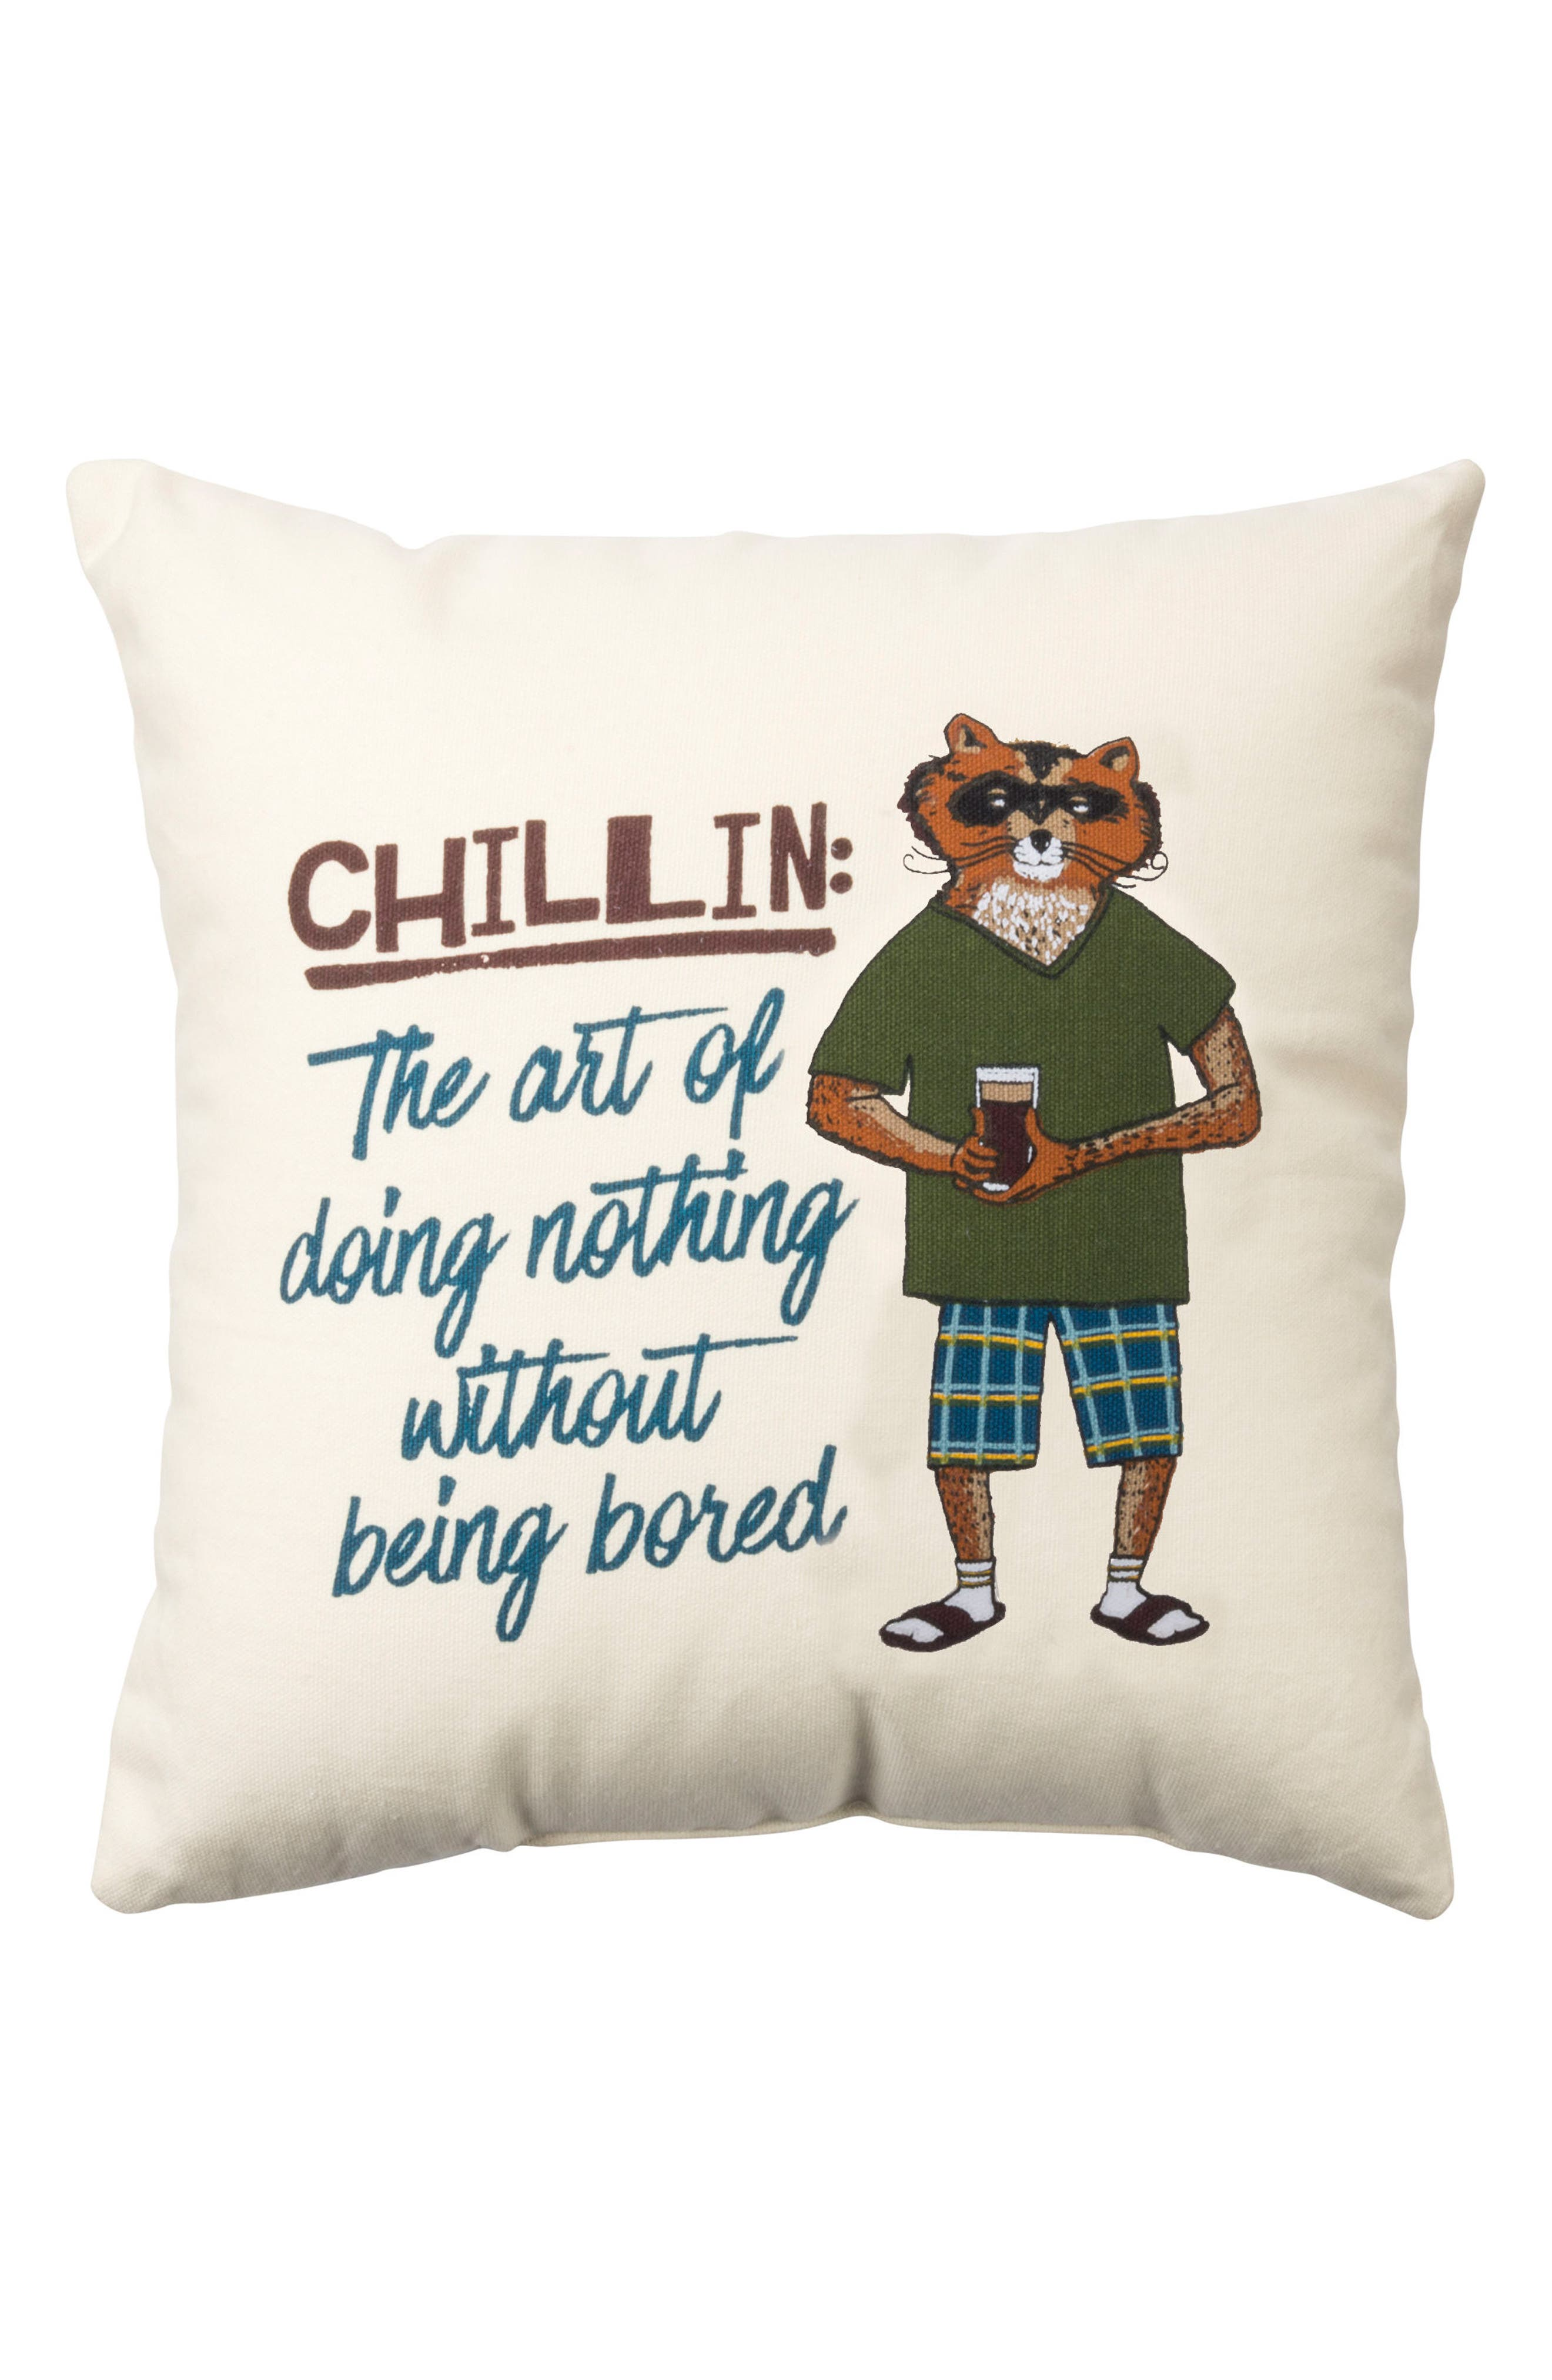 Primitives by Kathy Chillin' Accent Pillow